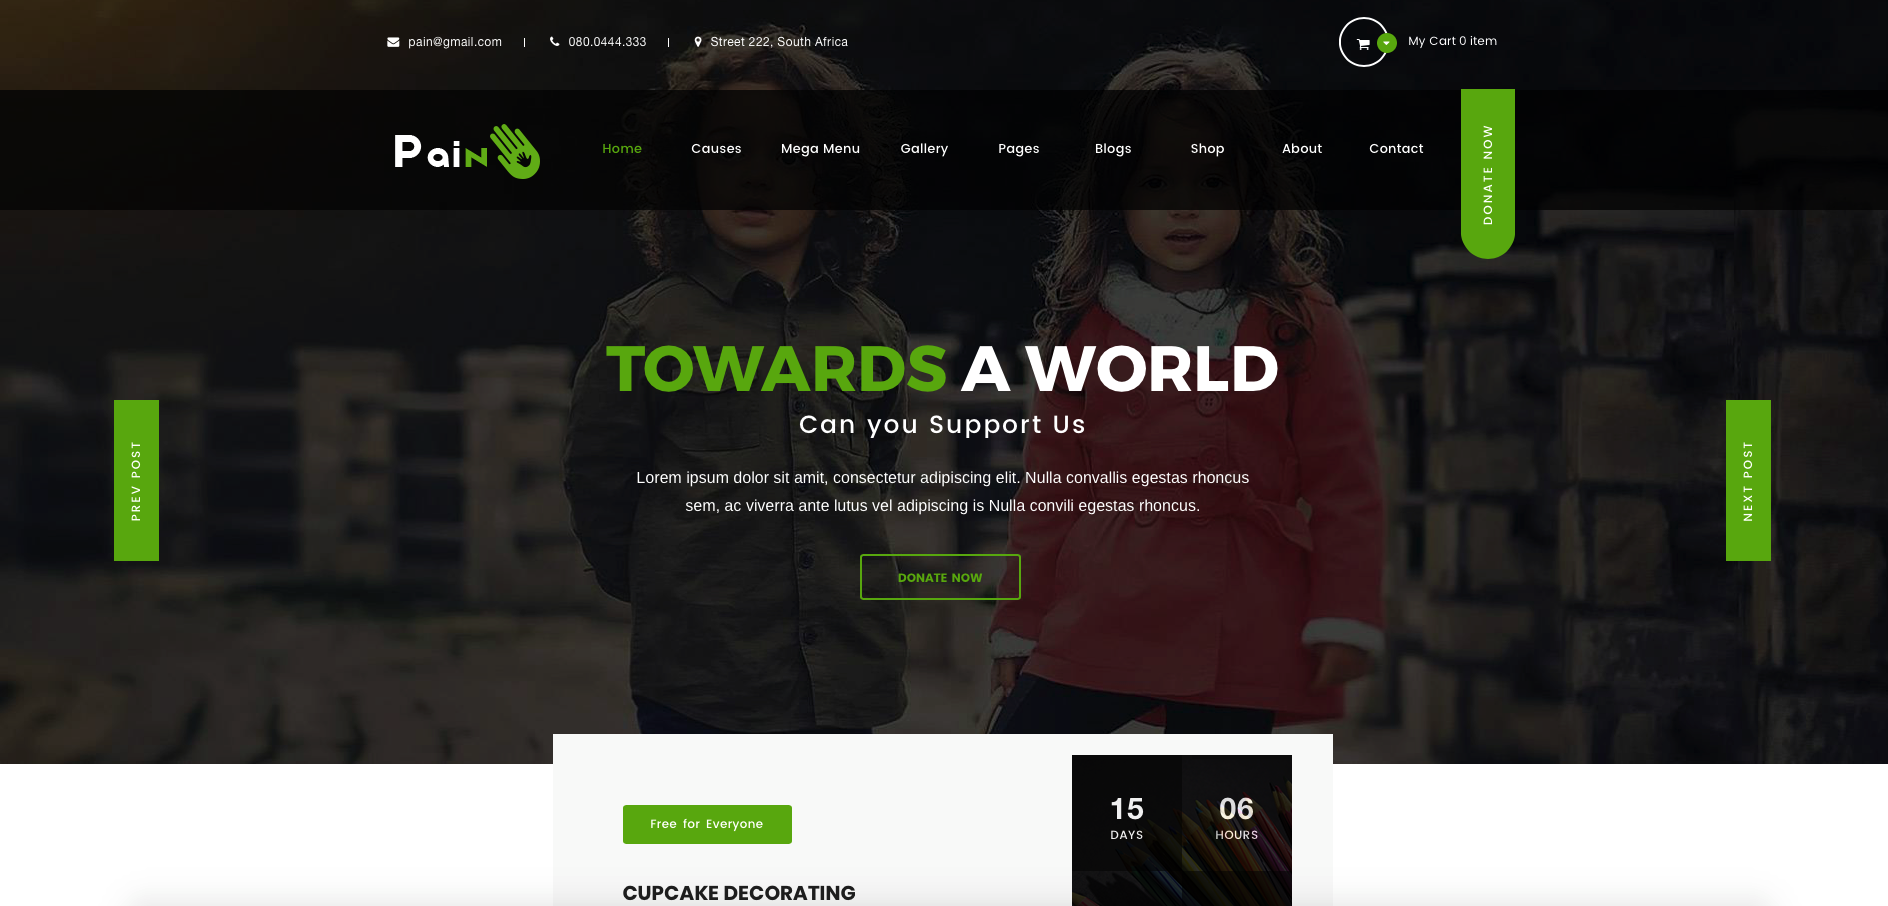 Best WordPress Theme for For Non-Profit, Charity and Fundraising Organizations 2018